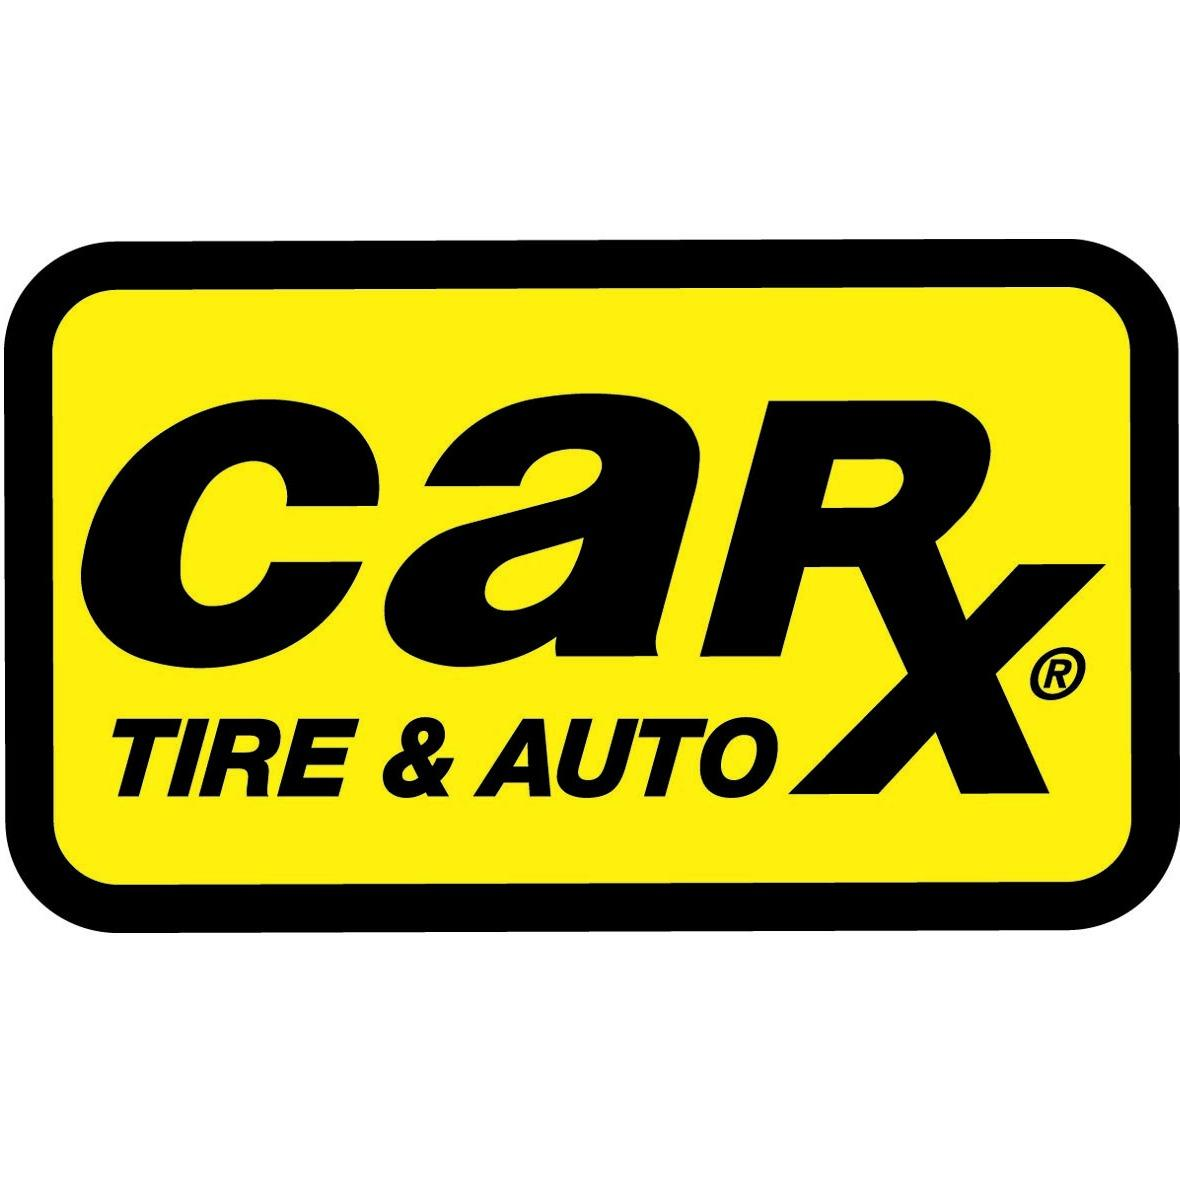 Car-X Tire & Auto image 2